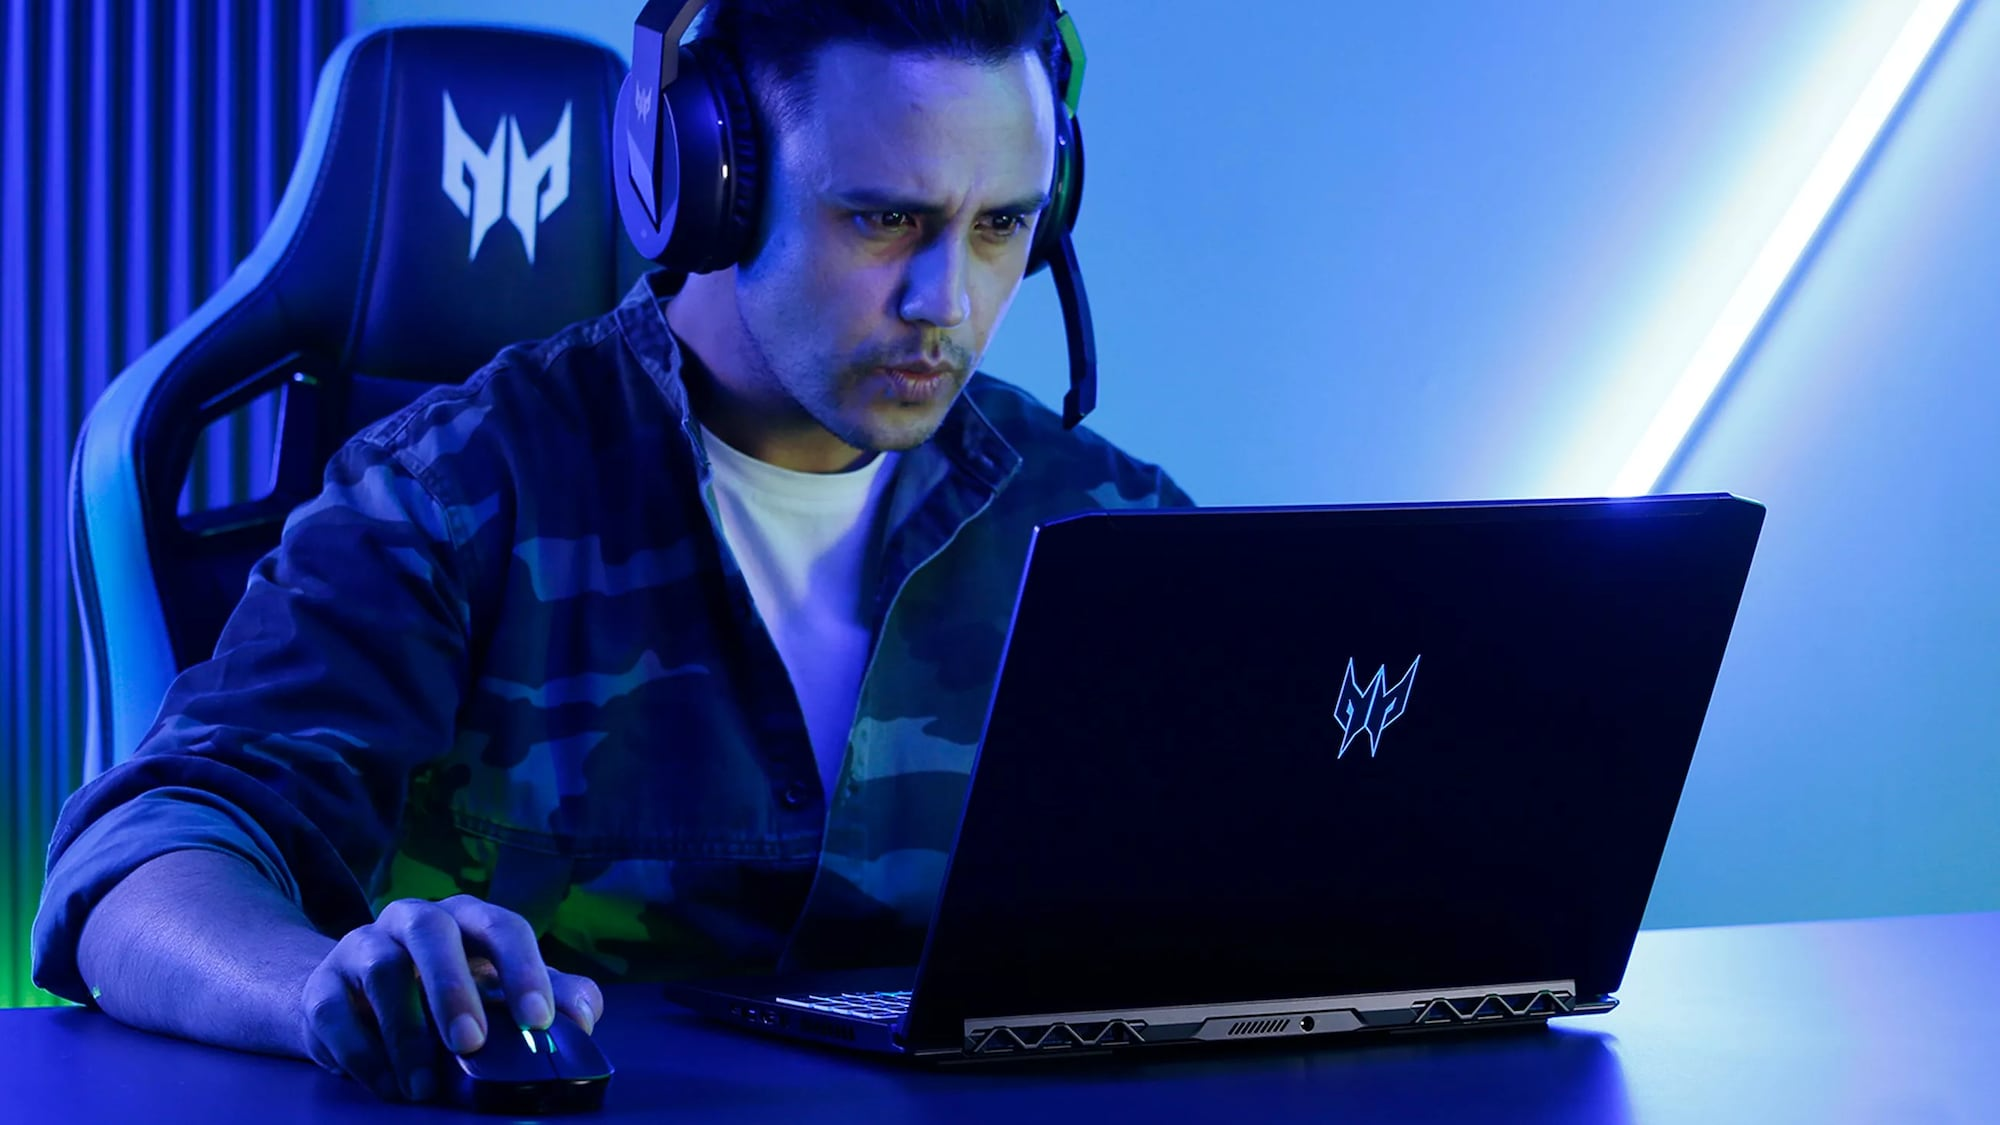 Acer Predator Triton 300 Gaming Laptop offers a 240 Hz refresh rate